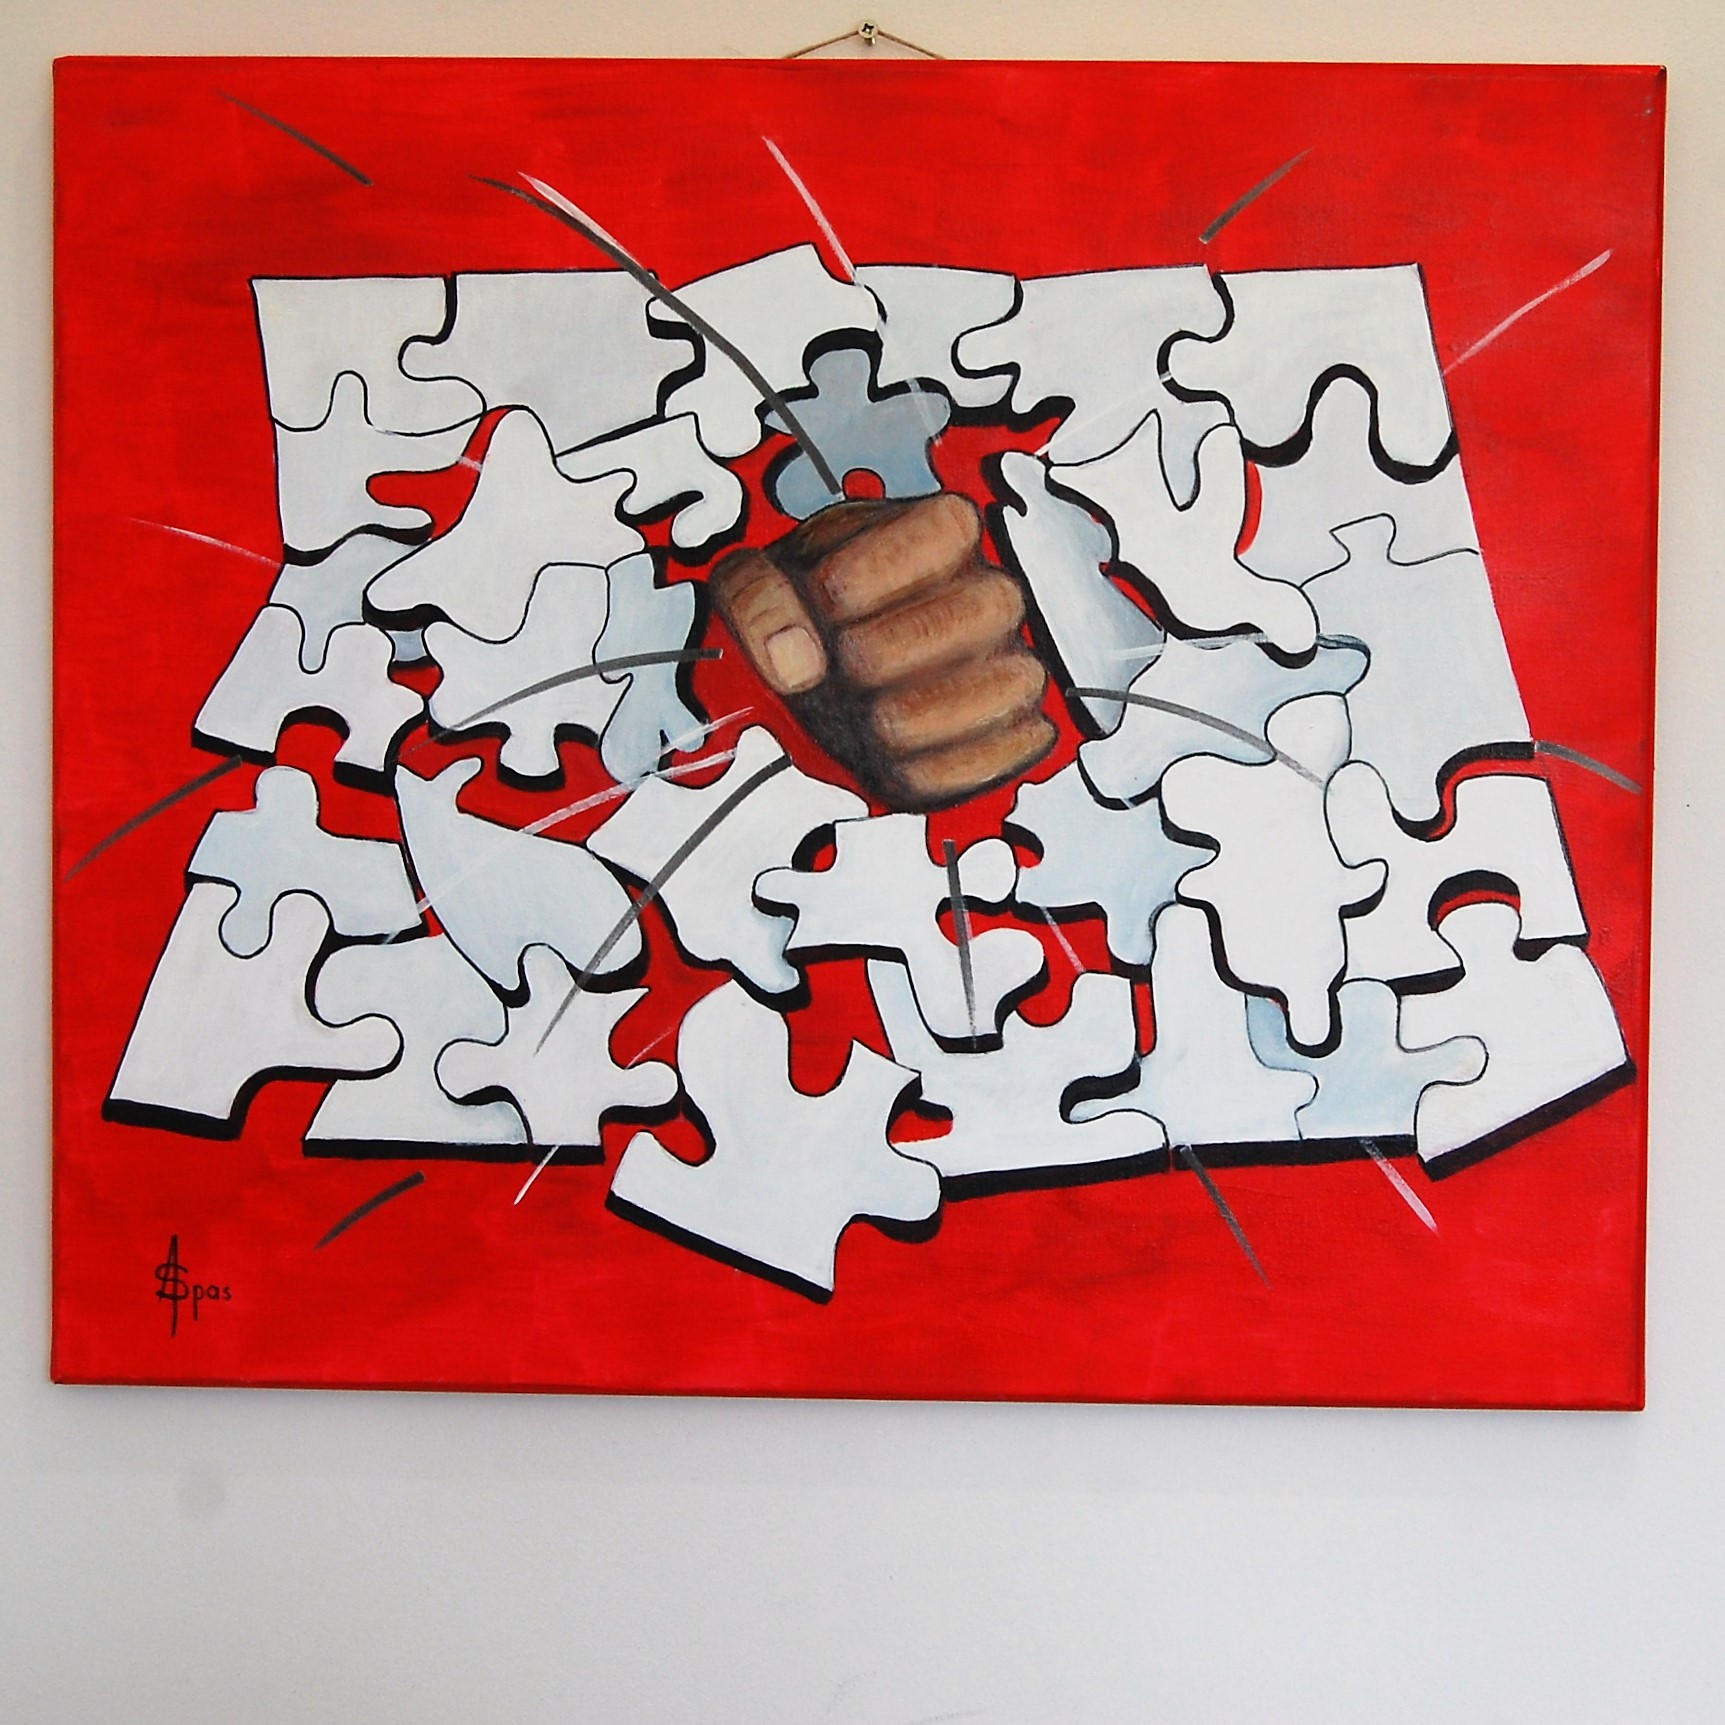 Punching puzzle 60x50